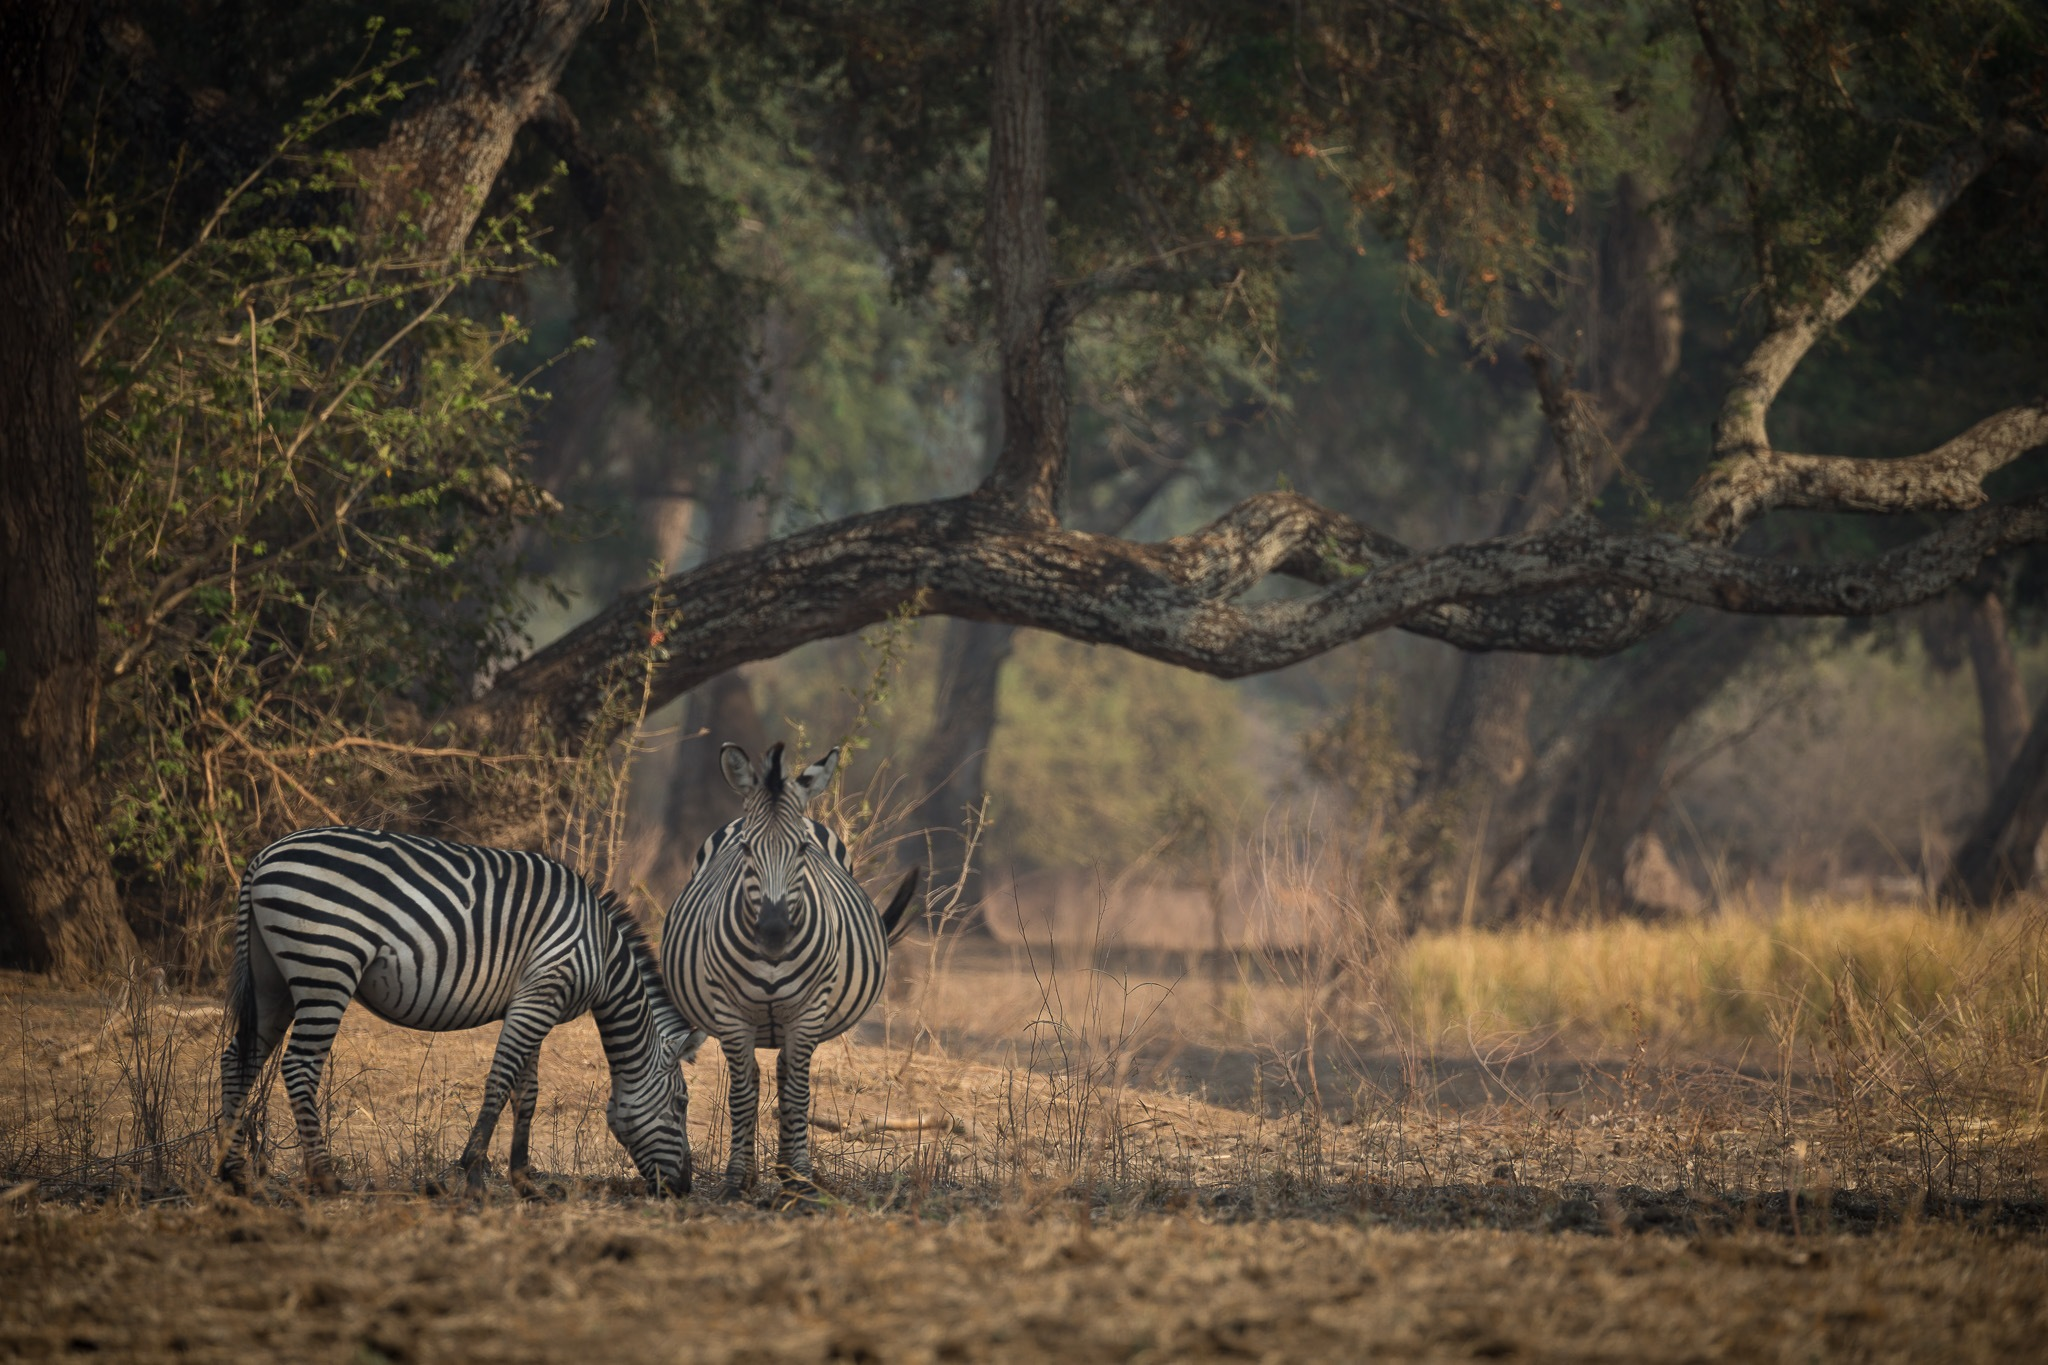 Stretching the stripes  by Kim Rehnfeldt